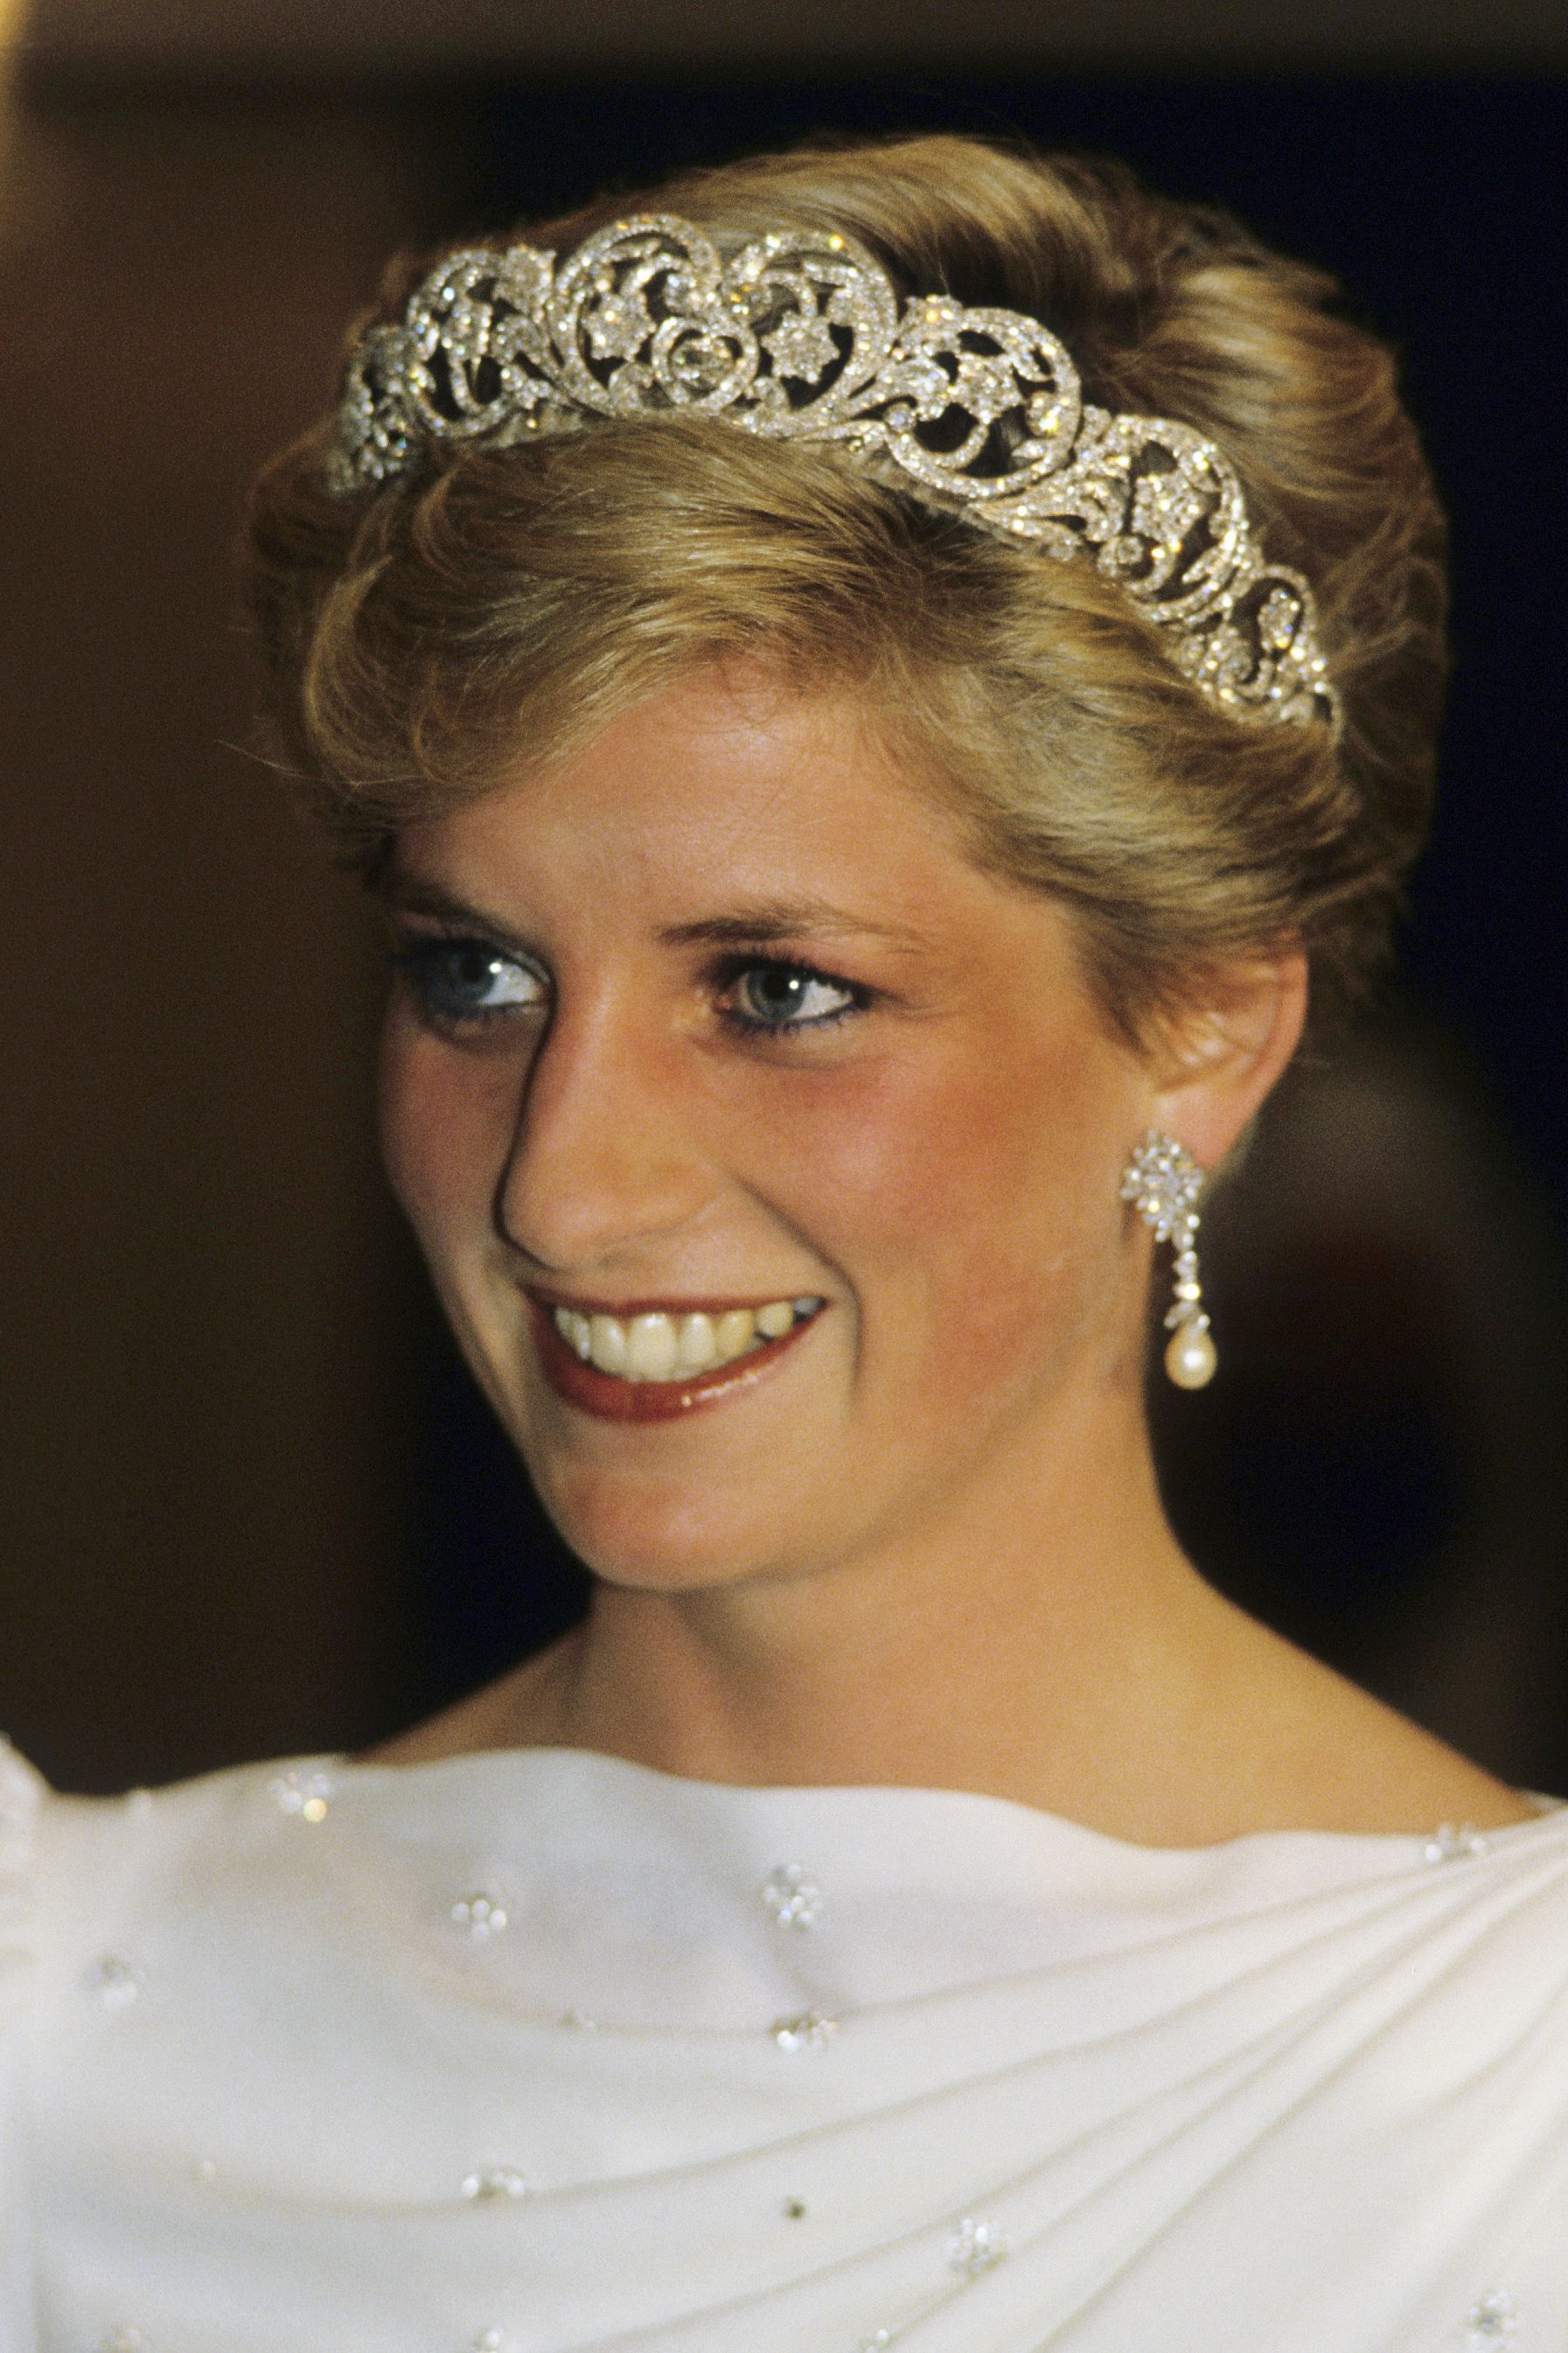 25 beauty secrets from princess diana the royals best makeup 25 beauty secrets from princess diana the royals best makeup and hair tips baditri Images